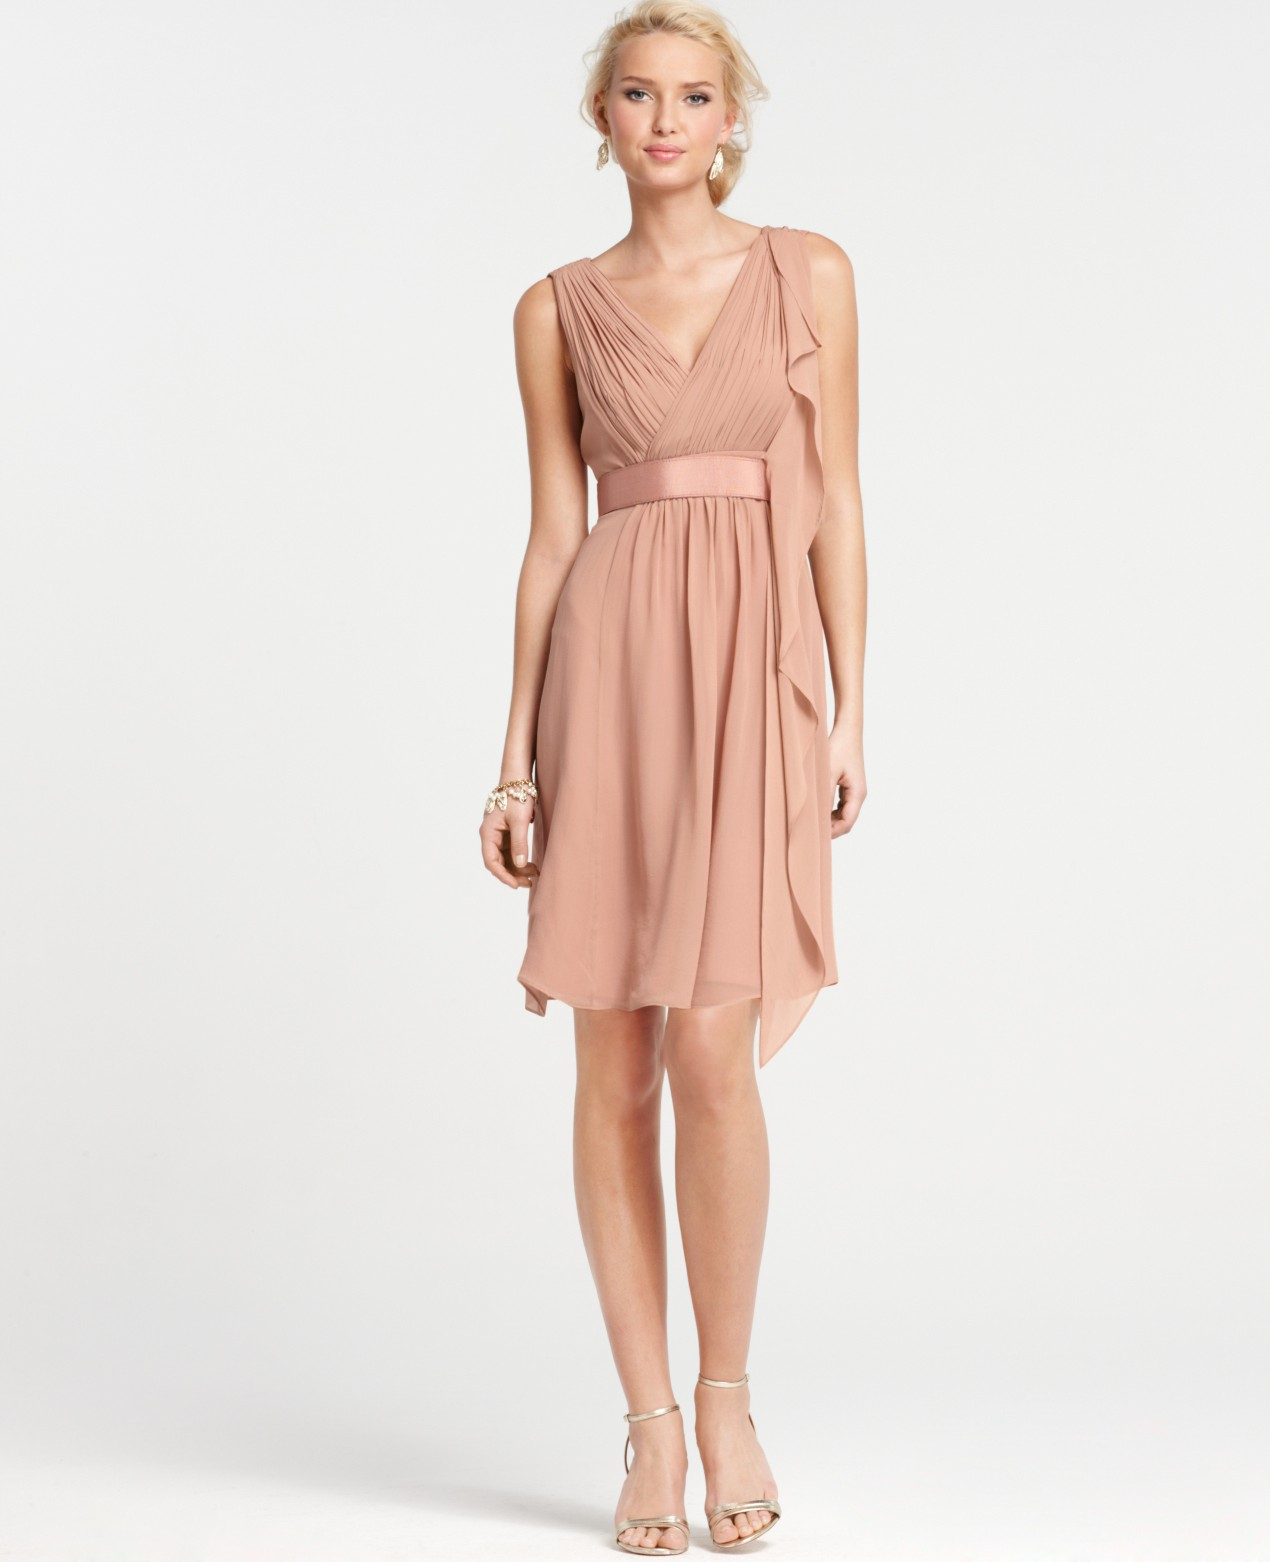 Ann Taylor Loft Dresses Bridesmaid Home Desain 2018